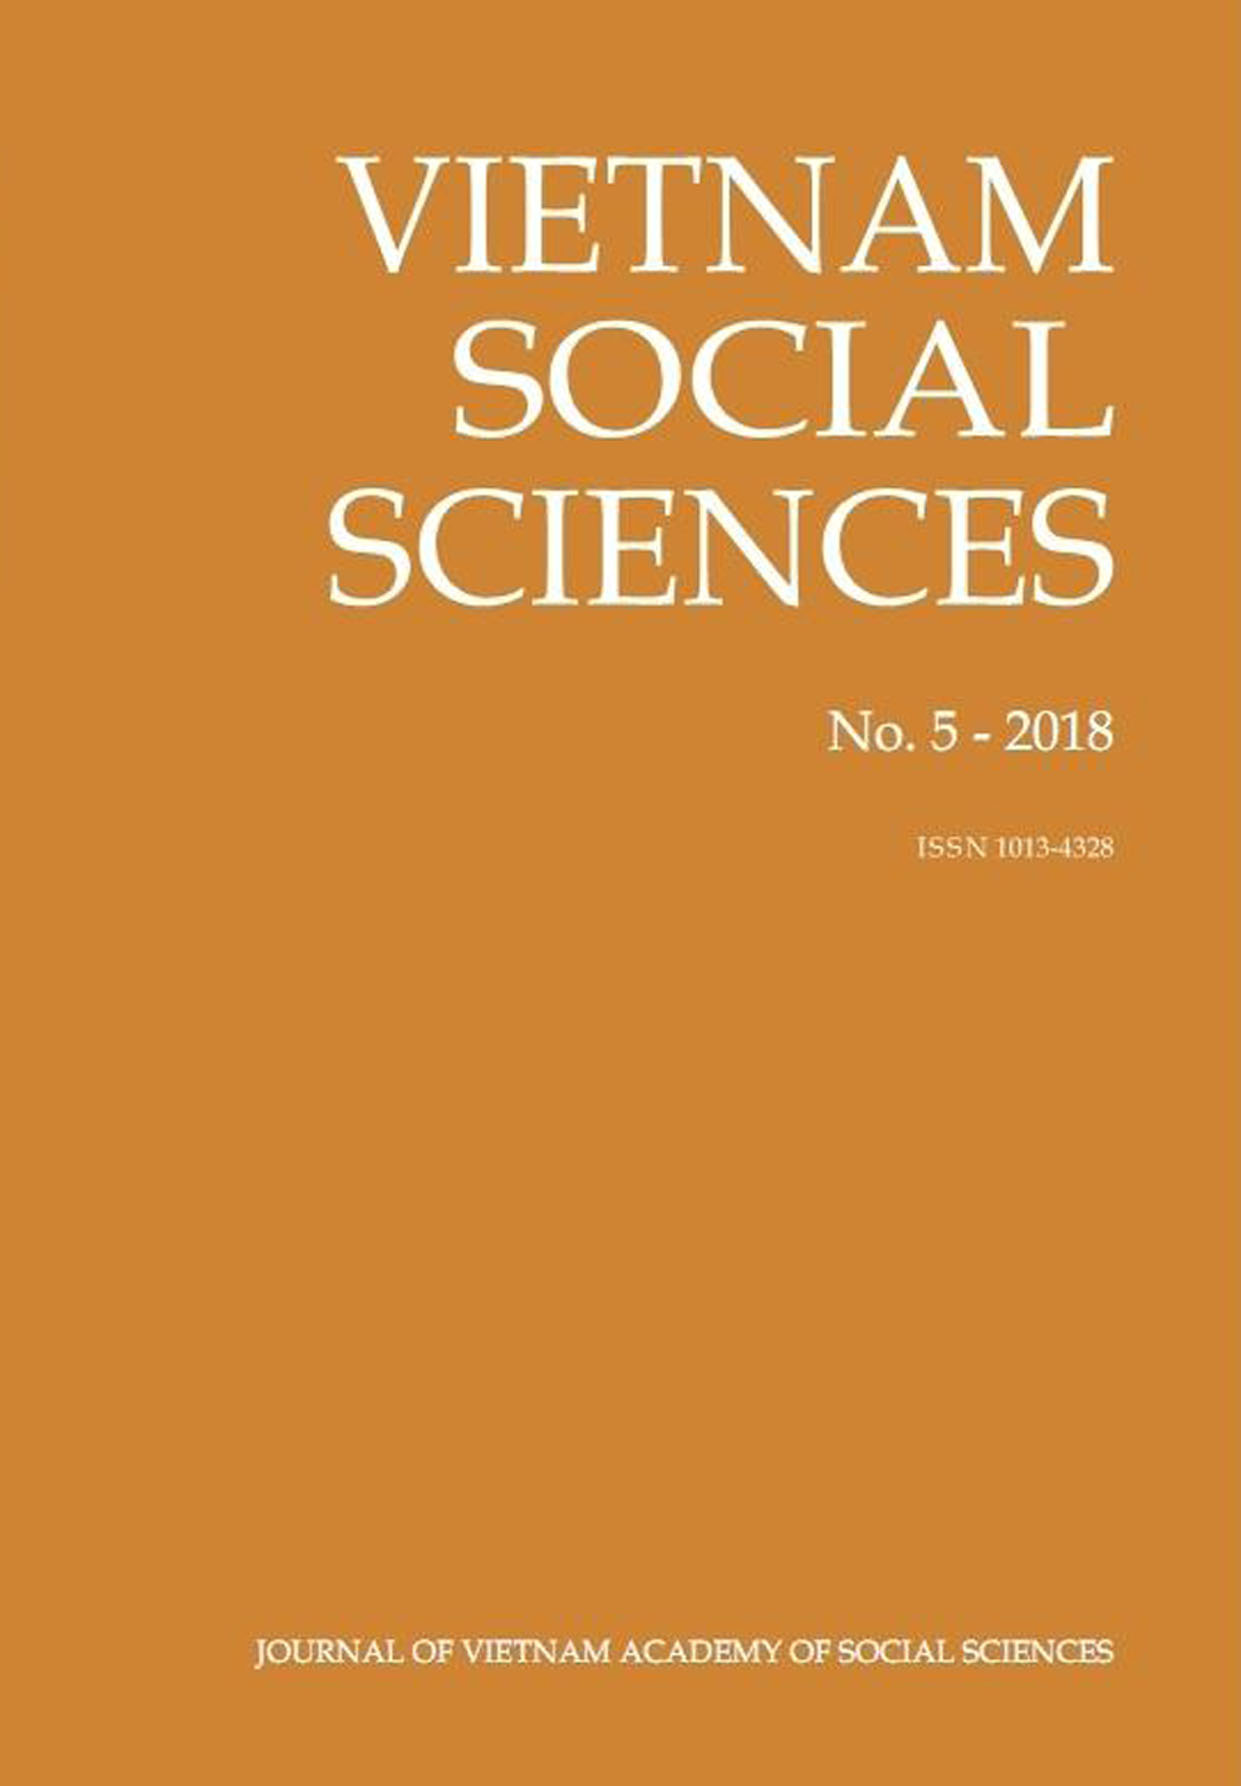 Vietnam Social Sciences. No. 5 - 2018